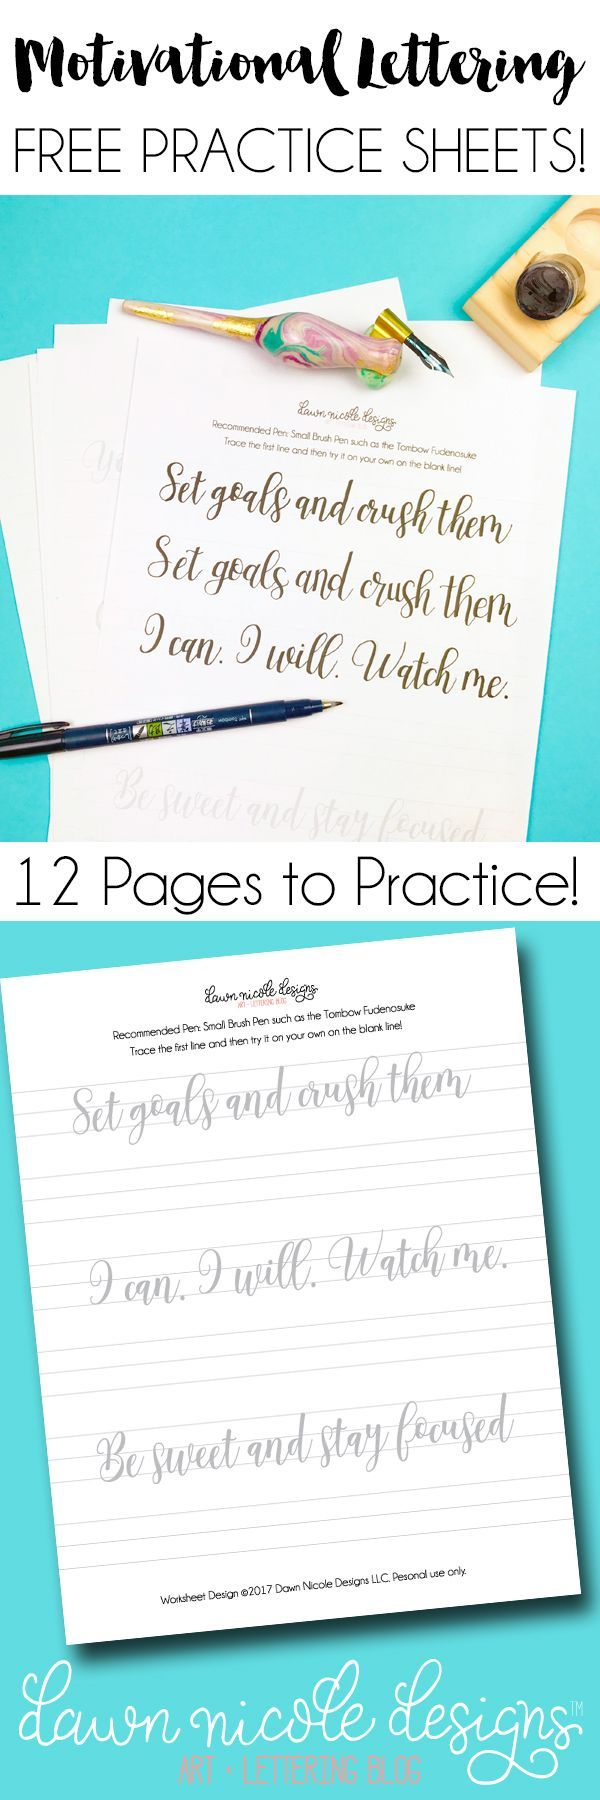 Motivational Free Calligraphy Practice Sheets. Download the free 12 page  PDF and get your lettering